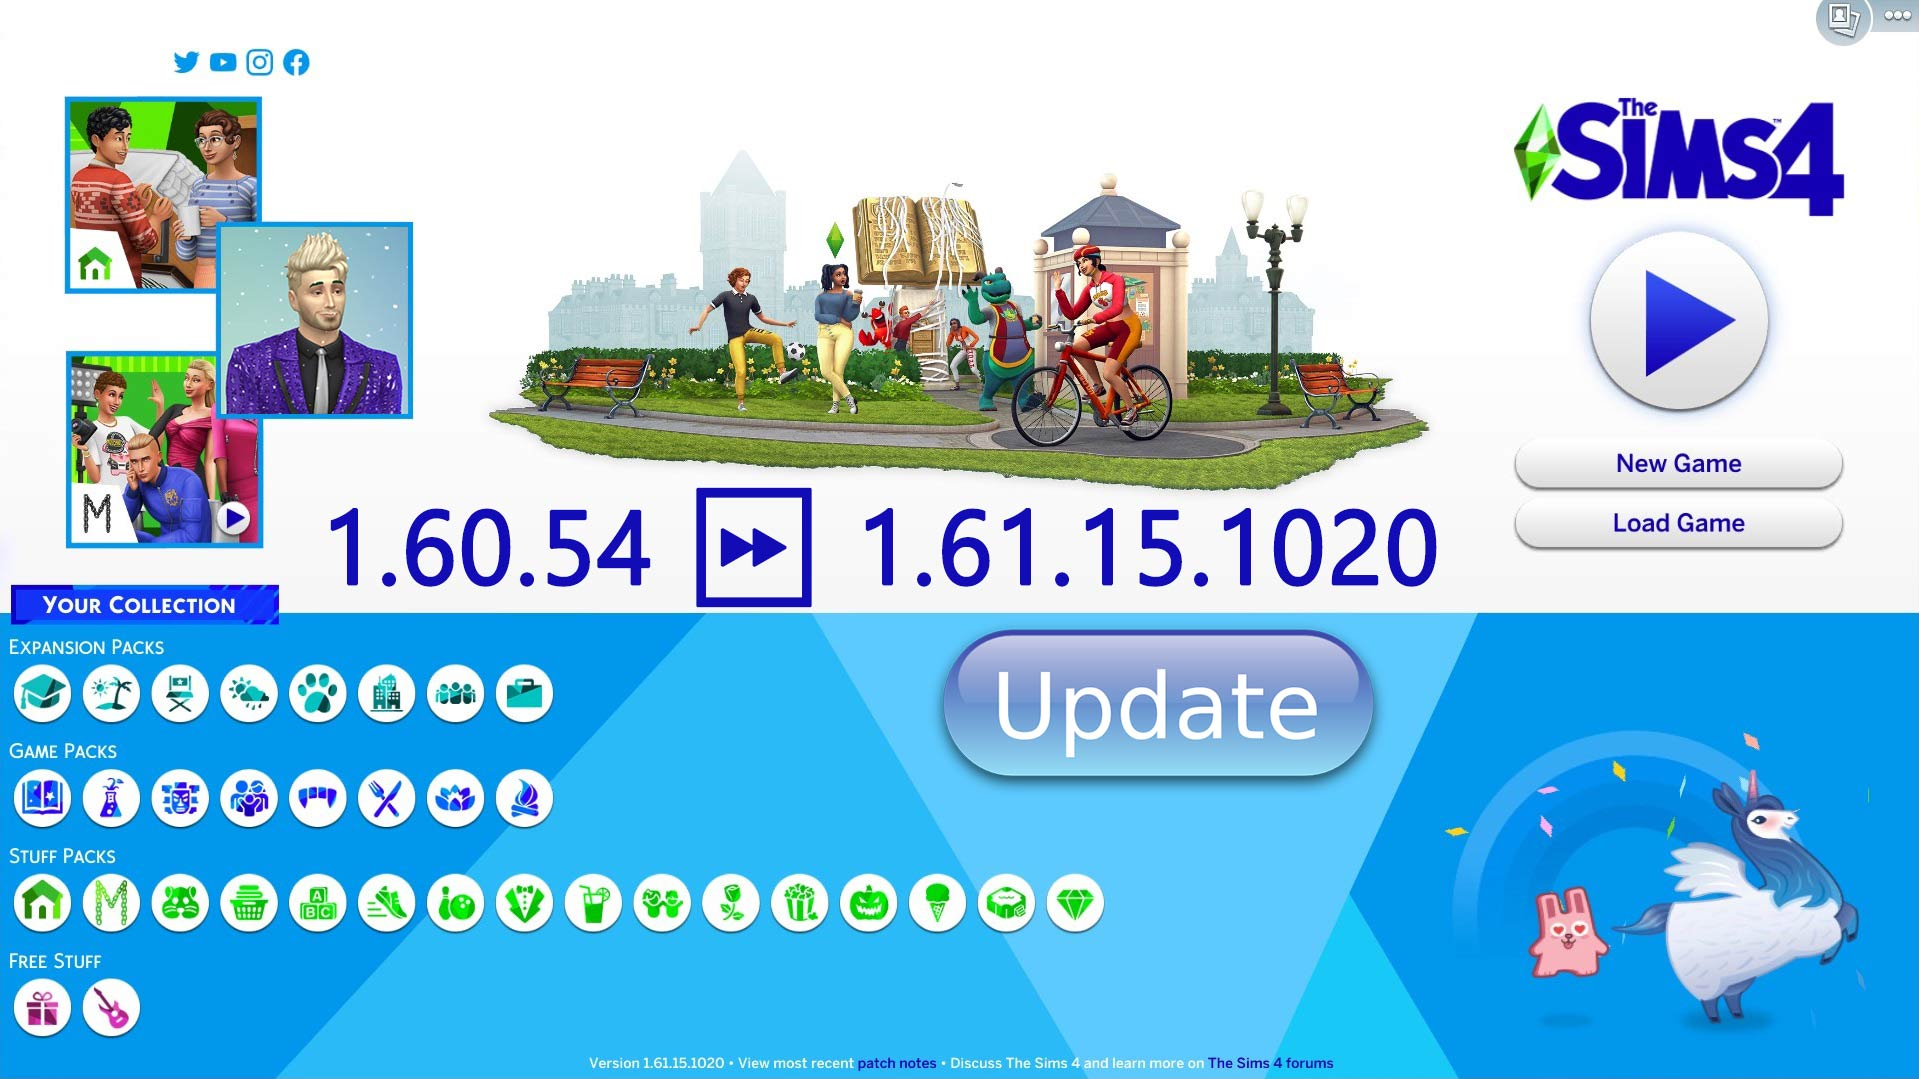 The Sims 4 Anniversary Update 1.61.15.1020 [From Tiny Living] - The Sim Architect